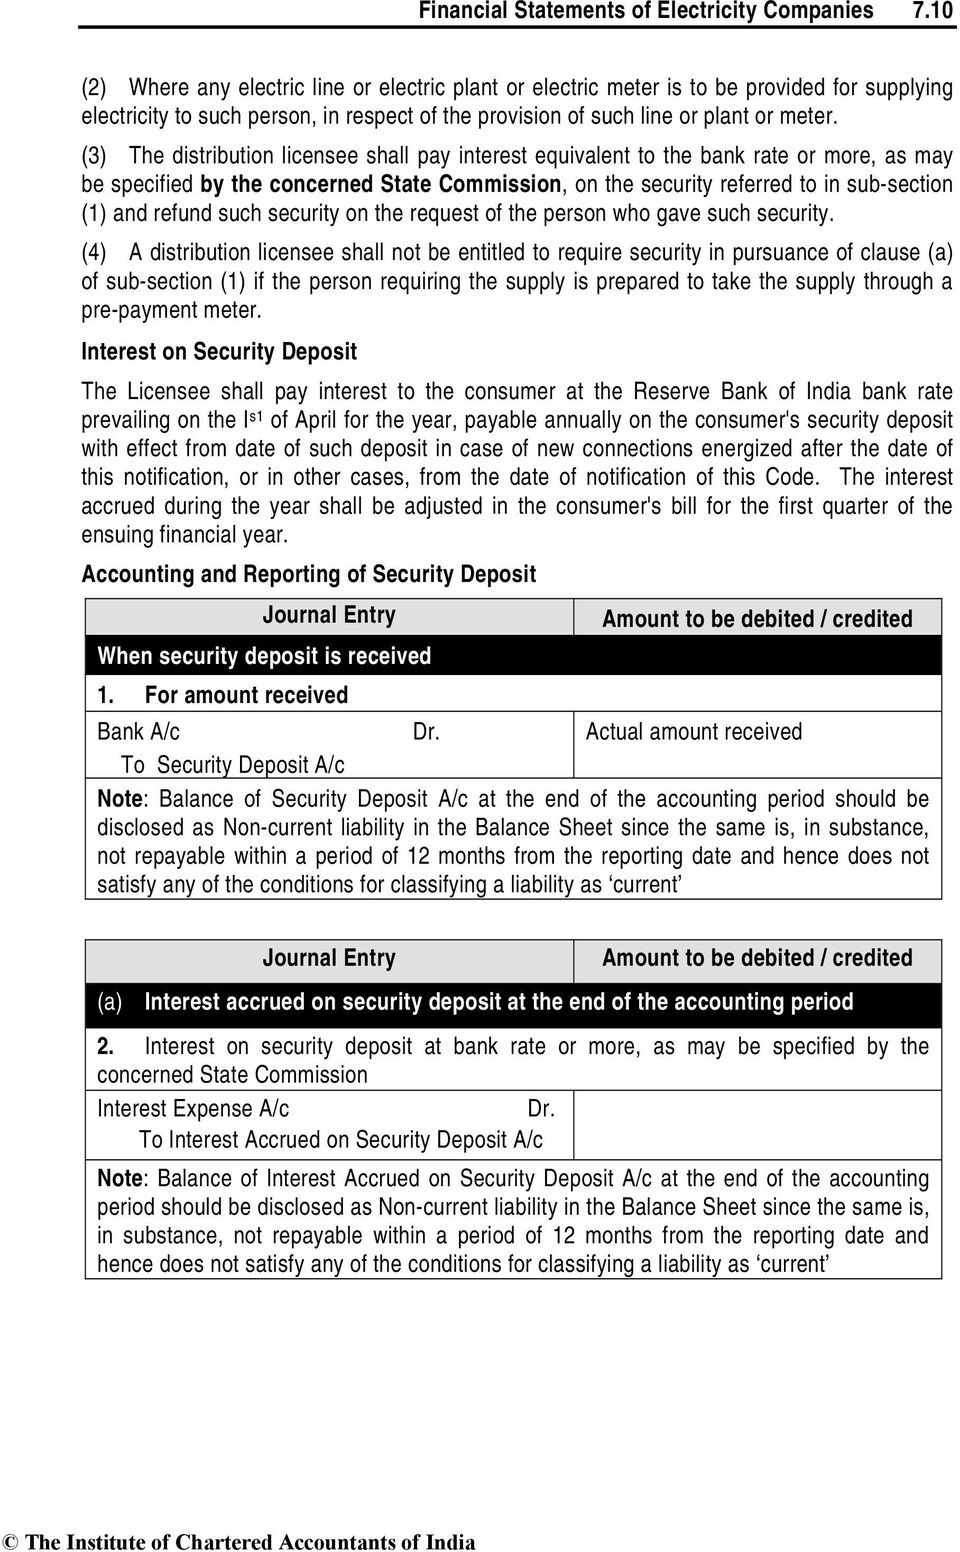 (3) The distribution licensee shall pay interest equivalent to the bank rate or more, as may be specified by the concerned State Commission, on the security referred to in sub-section (1) and refund